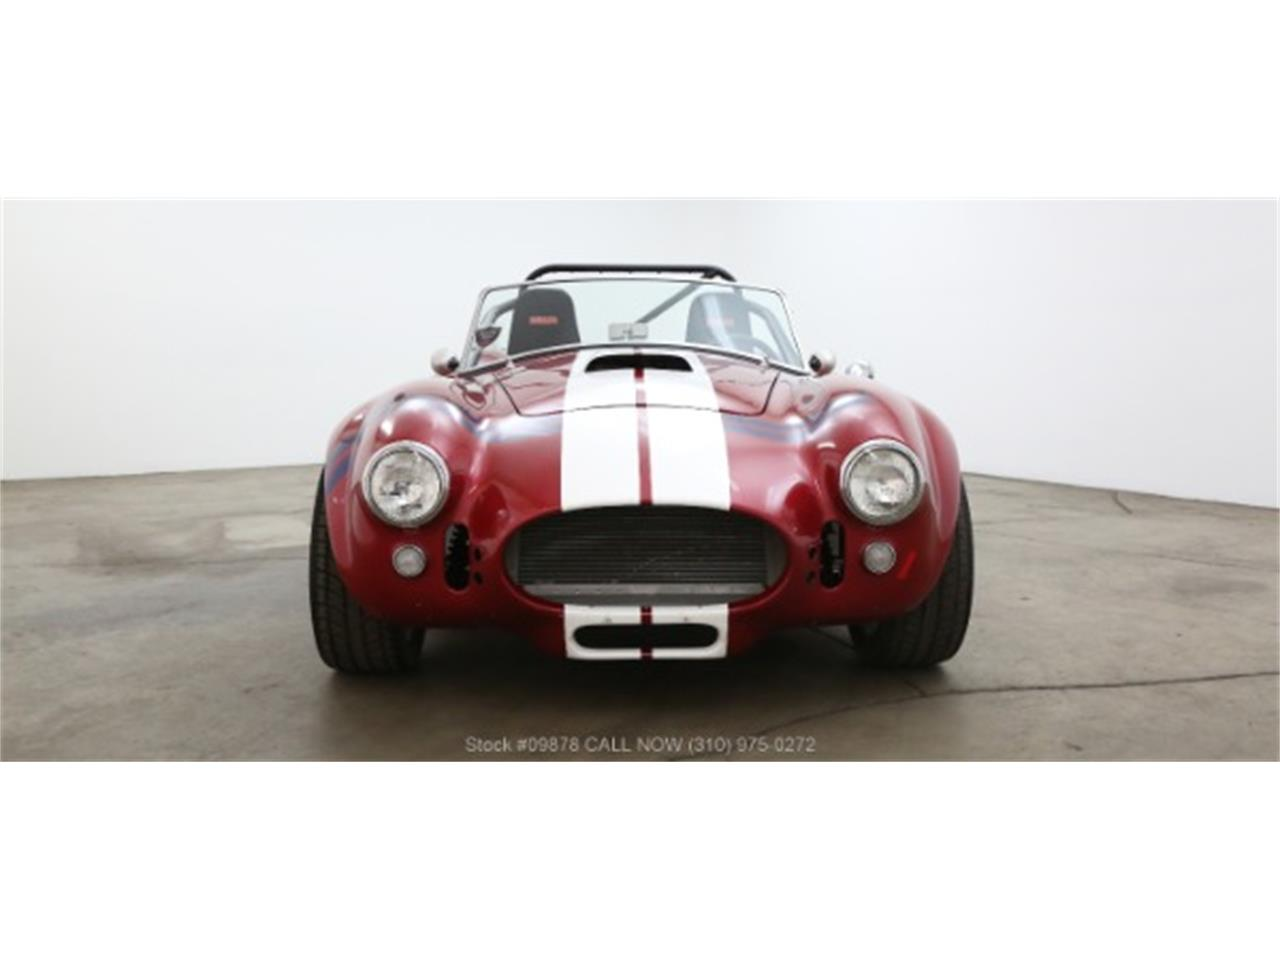 Factory Five Cobra For Sale >> 2005 Factory Five Cobra For Sale In Beverly Hills Ca